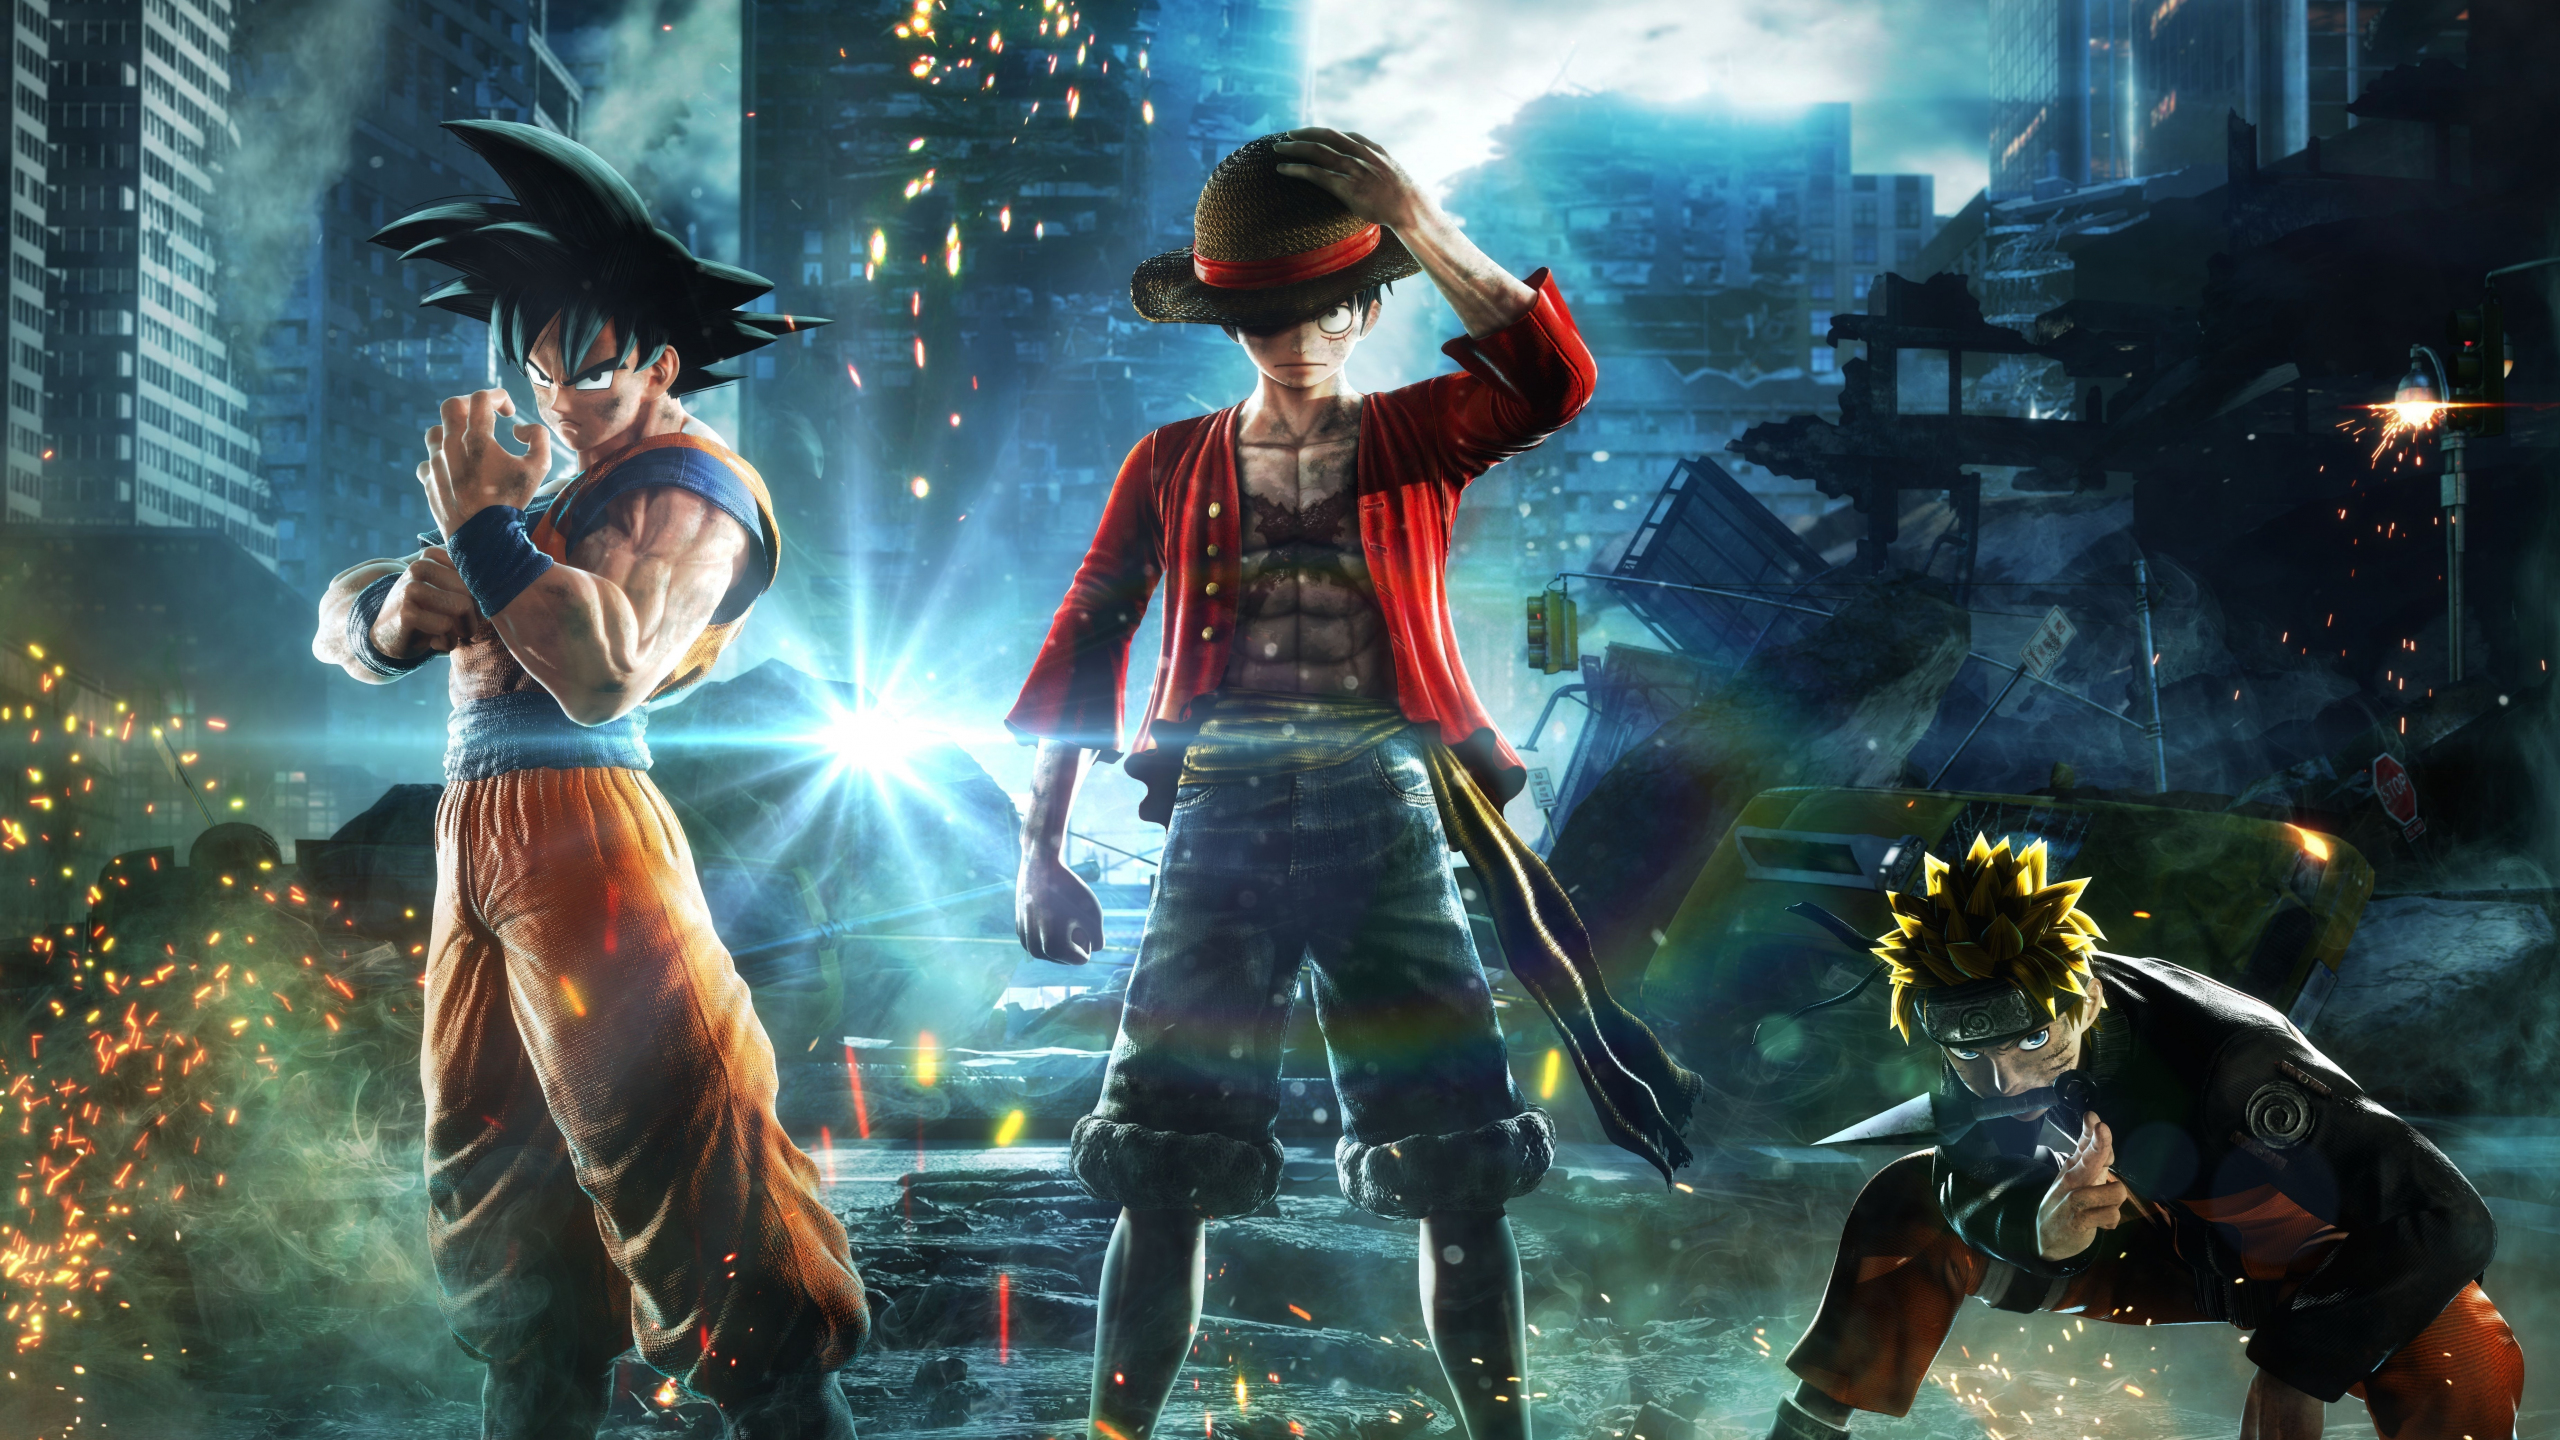 Download 2560x1440 Wallpaper Jump Force Anime Video Game